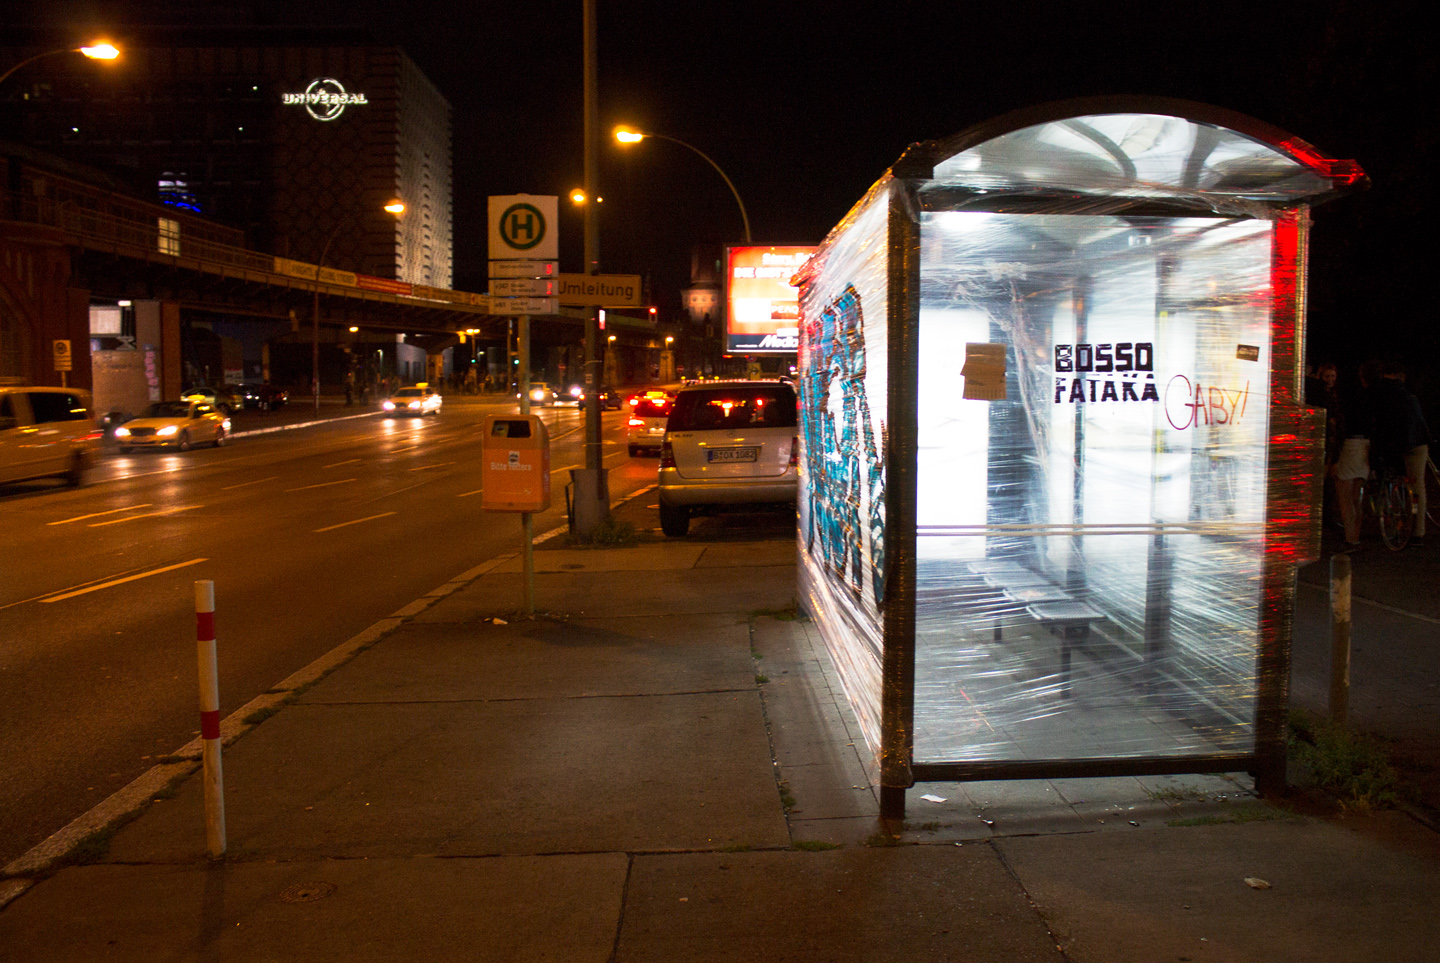 Bus Stop Instalation by Berlin based Street Art Team Bosso Fataka